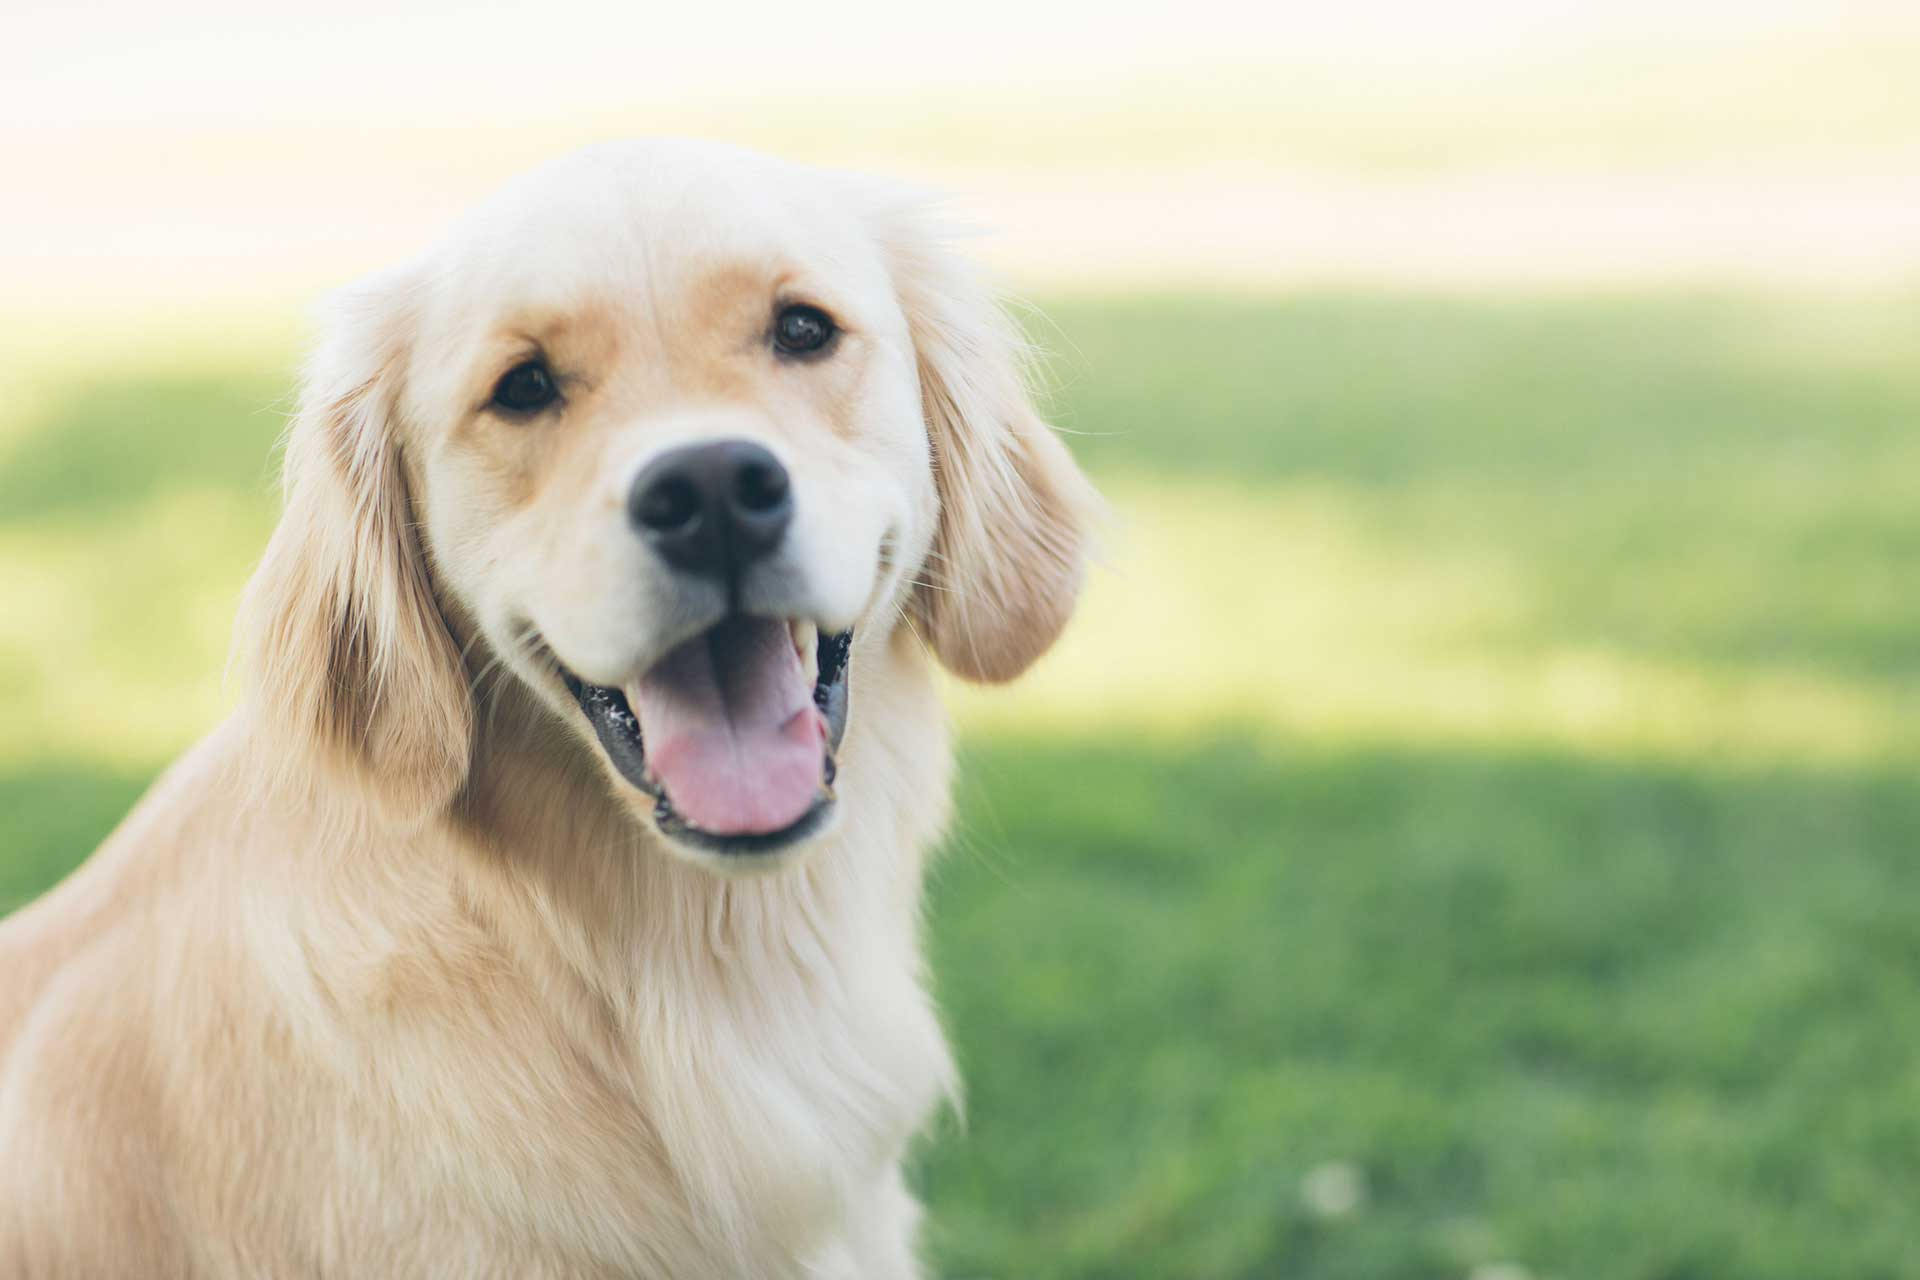 a golden retriever smiling looking at the camera